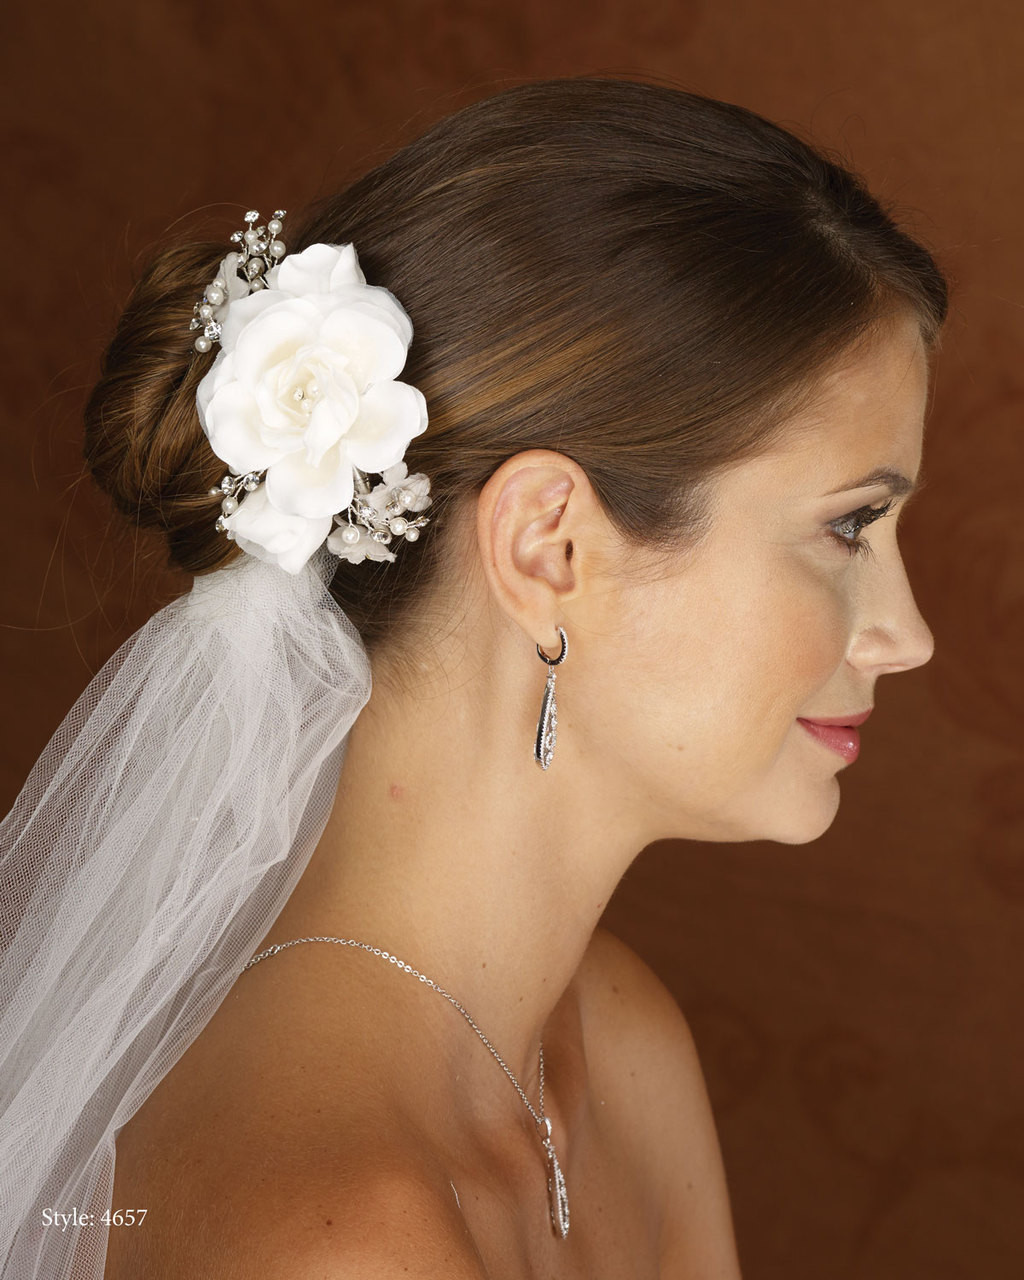 Marionat Bridal 4657 Flower clip with Pearl and Rhinestone Sprays- Le crystal